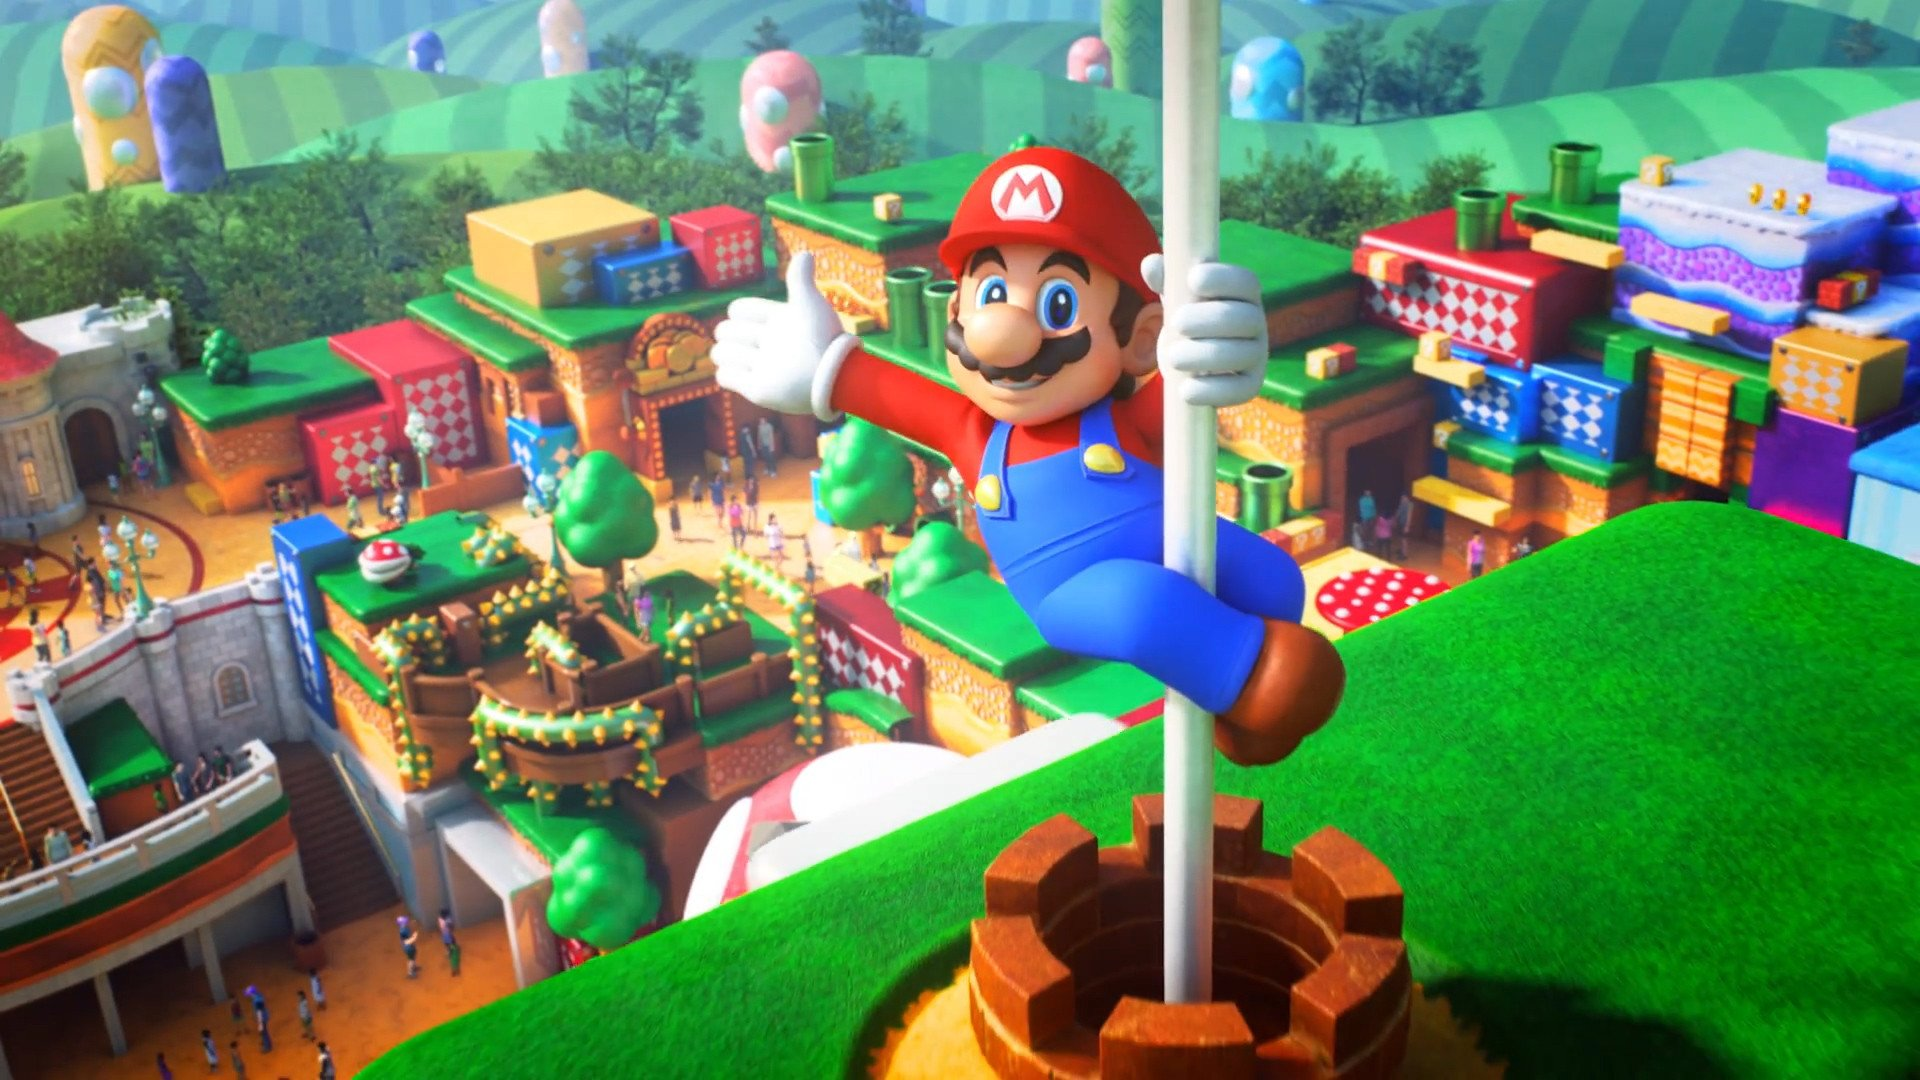 Super Nintendo World is set for a Spring 2020 opening in Osaka screenshot